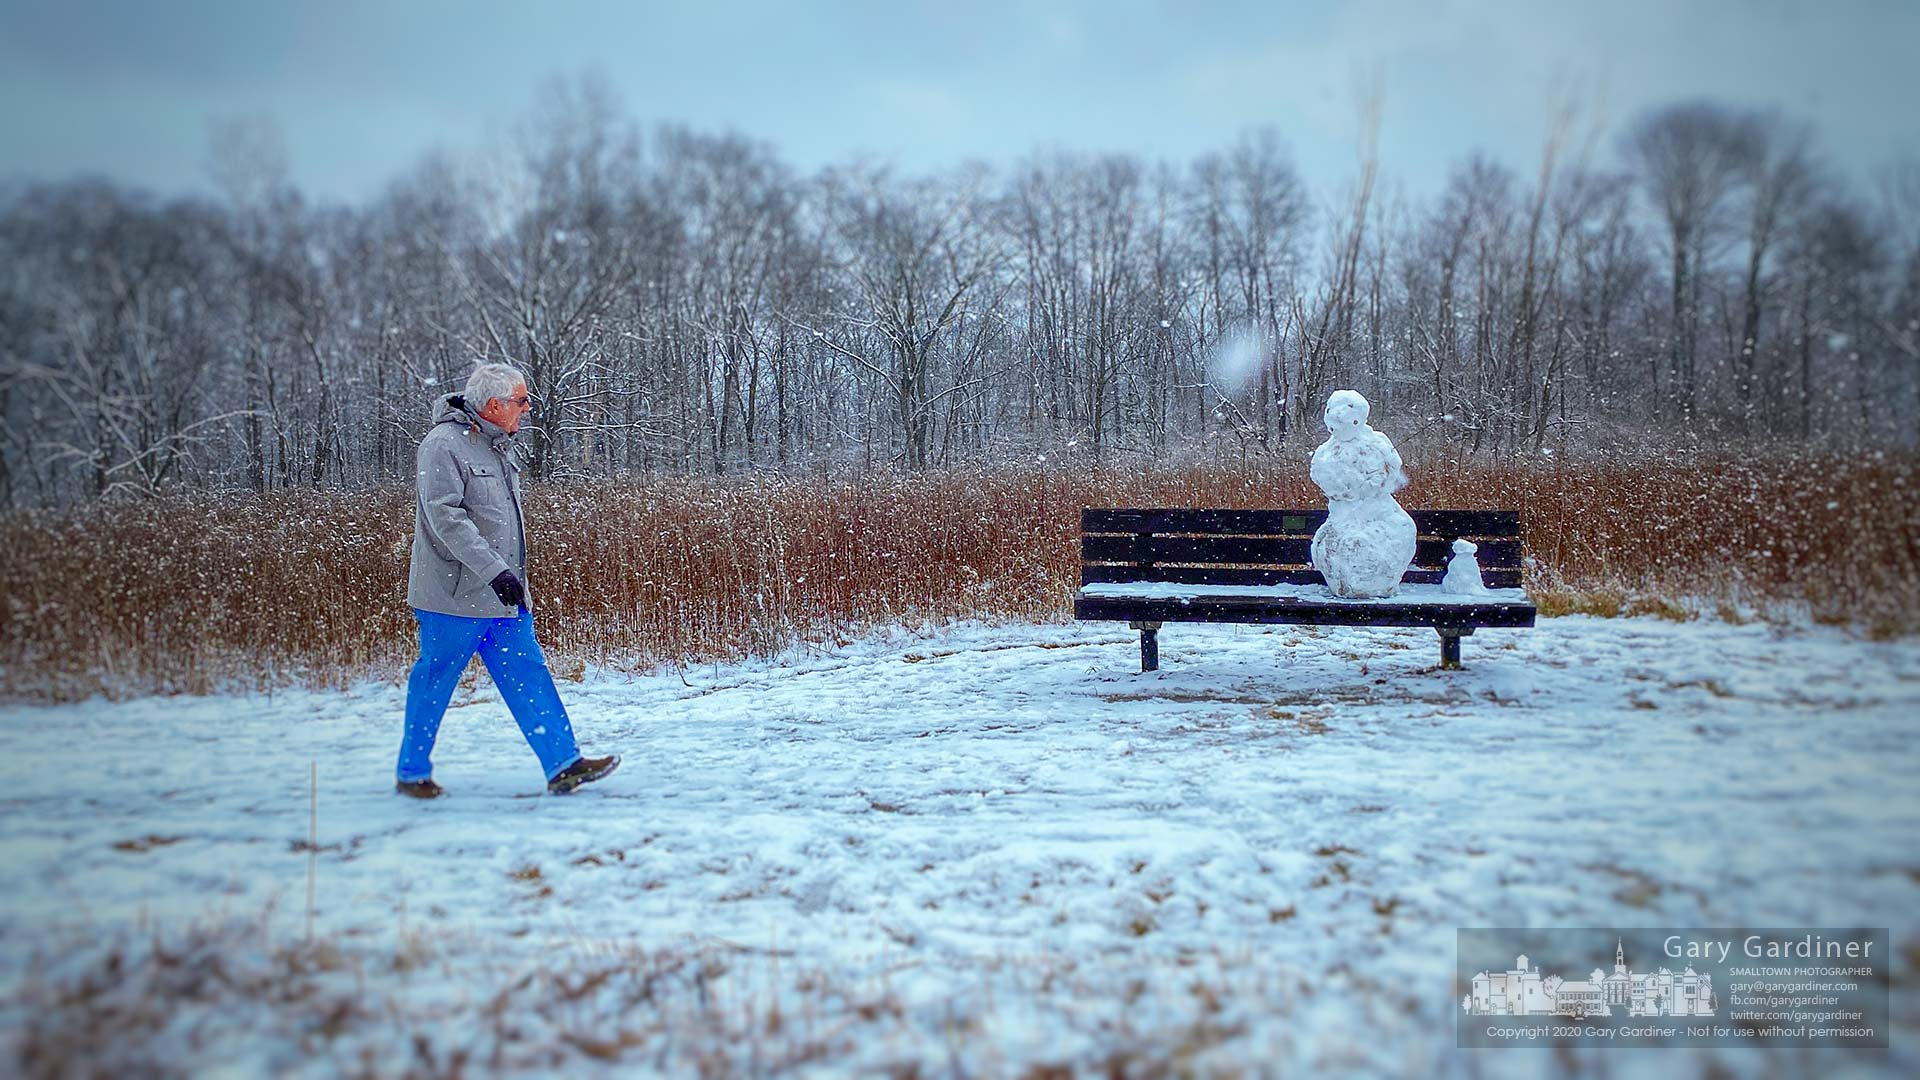 A man turns to look at a four-eyed snowman and his smaller companion built on a bench as he walks on a section of the Spring Creek Trail at Sharon Woods Metro Park during Saturday afternoon's snowfall. My Final Photo for Feb. 8, 2020.